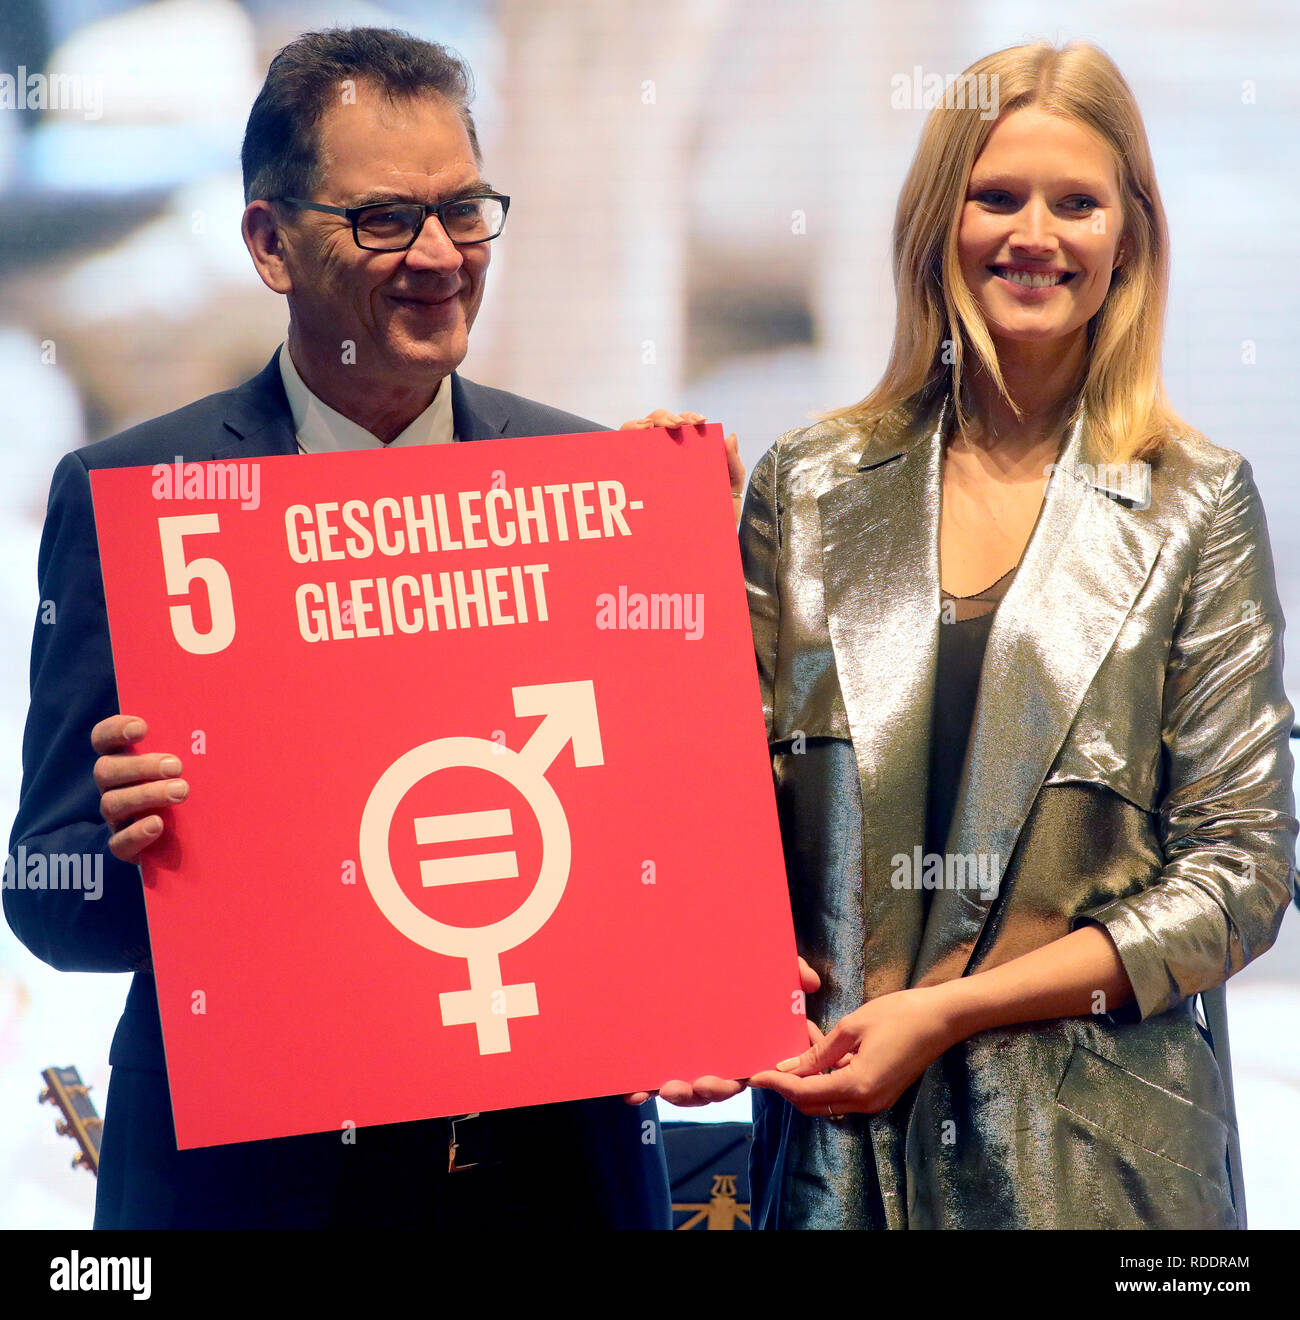 """Berlin, Germany. 18th Jan, 2019. Gerd Müller (CSU), German Development Minister, and photo model Toni Garrn are taking part in an event at the International Green Week under the motto: """"EINEWELT ohne Hunger ist möglich - mit fairem Einkauf und fairer Produktion"""" (""""ONE World without Hunger is Possible - with Fair Shopping and Fair Production""""). The fair for food, agriculture and horticulture took place for the first time in Berlin in 1926. The partner country this year is Finland. Credit: Wolfgang Kumm/dpa/Alamy Live News Stock Photo"""